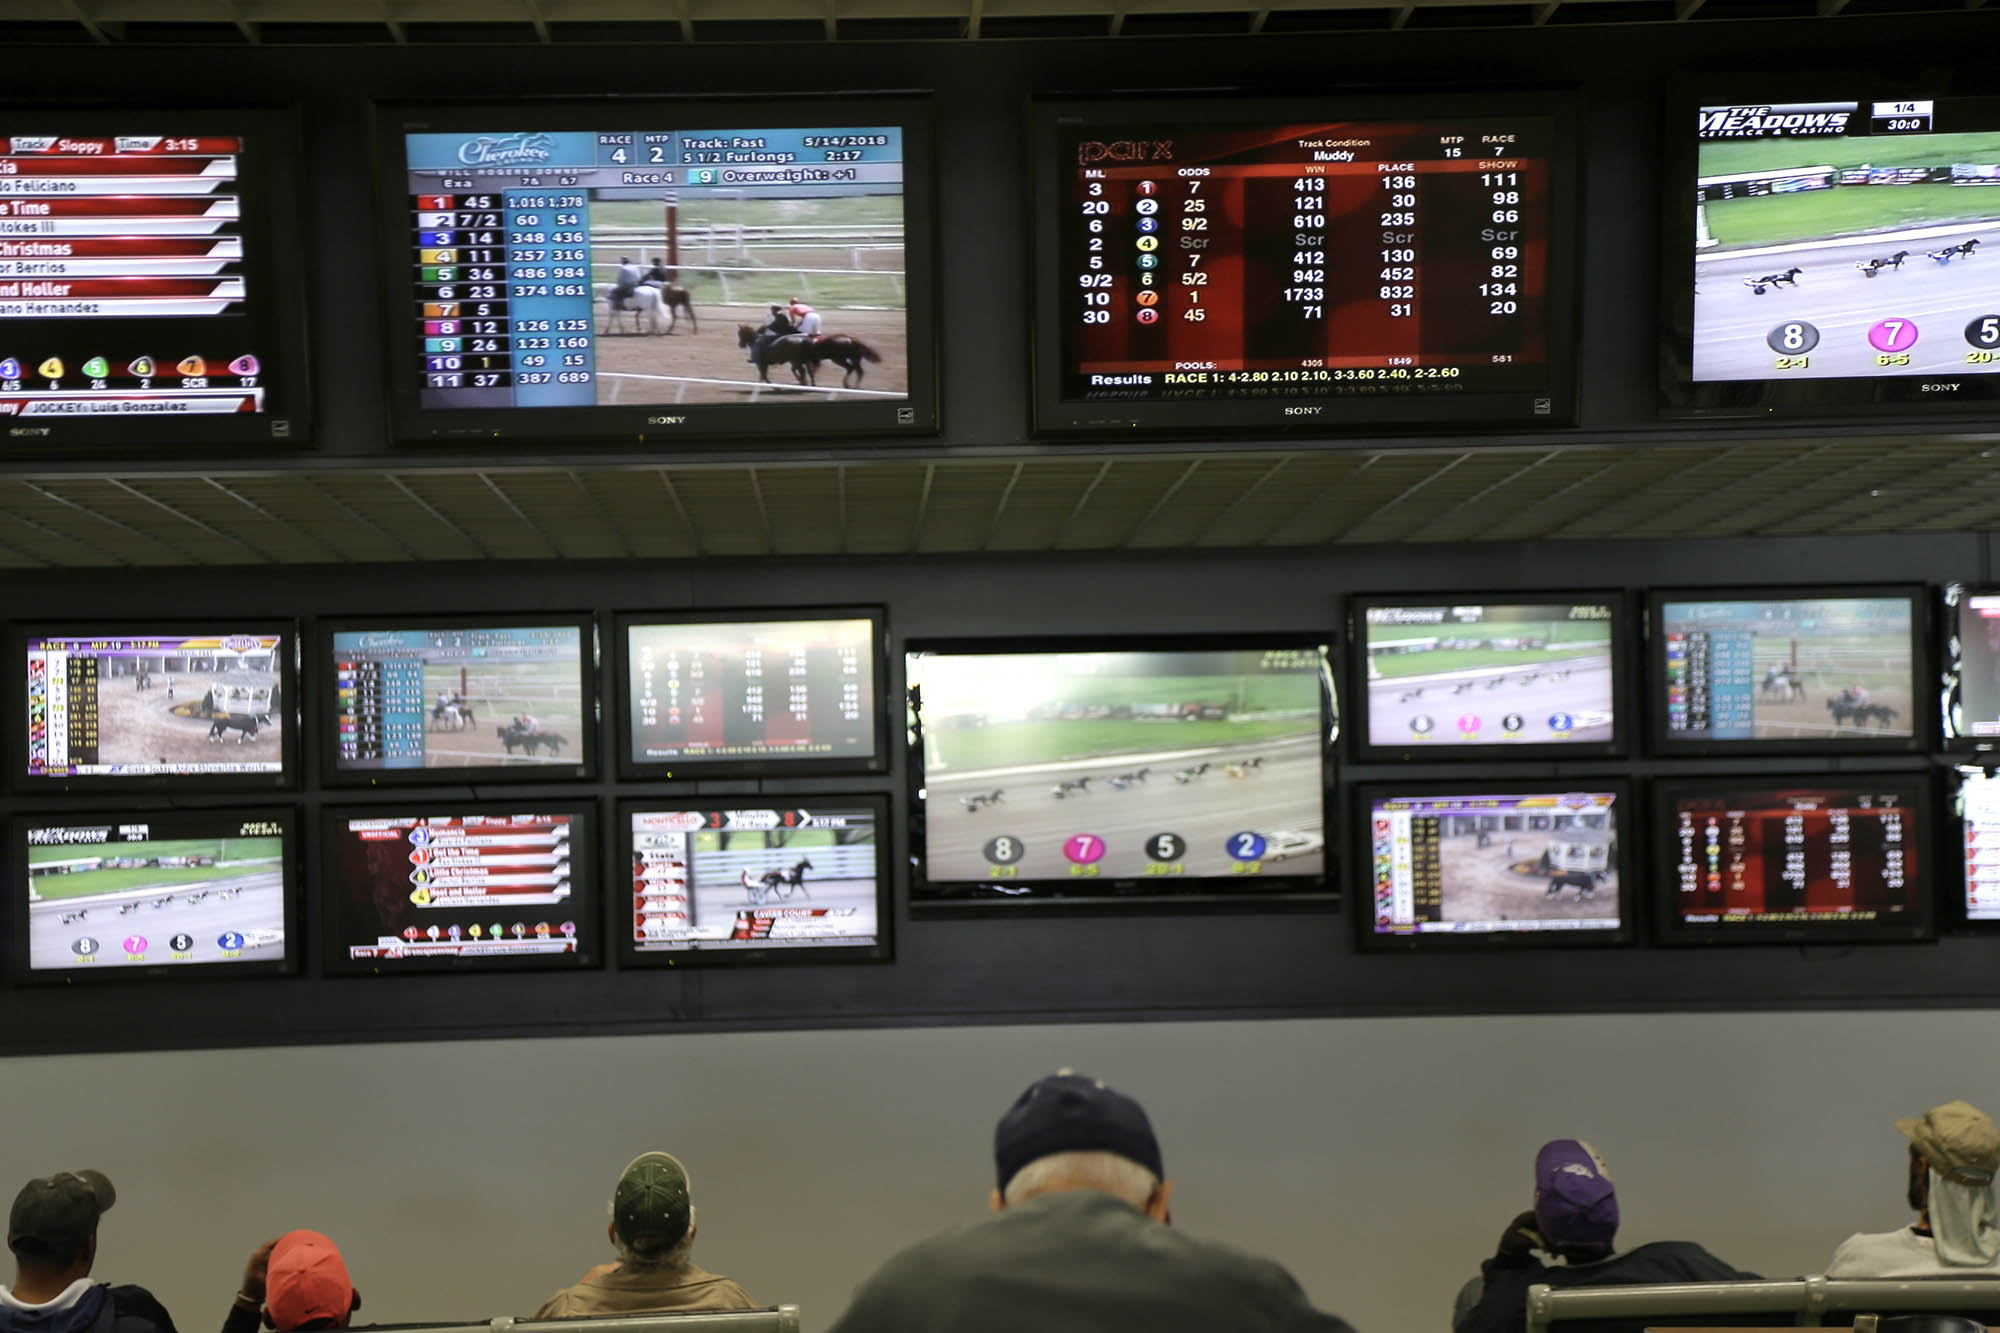 Nj sports betting bill six persons arrested on betting chargesmart